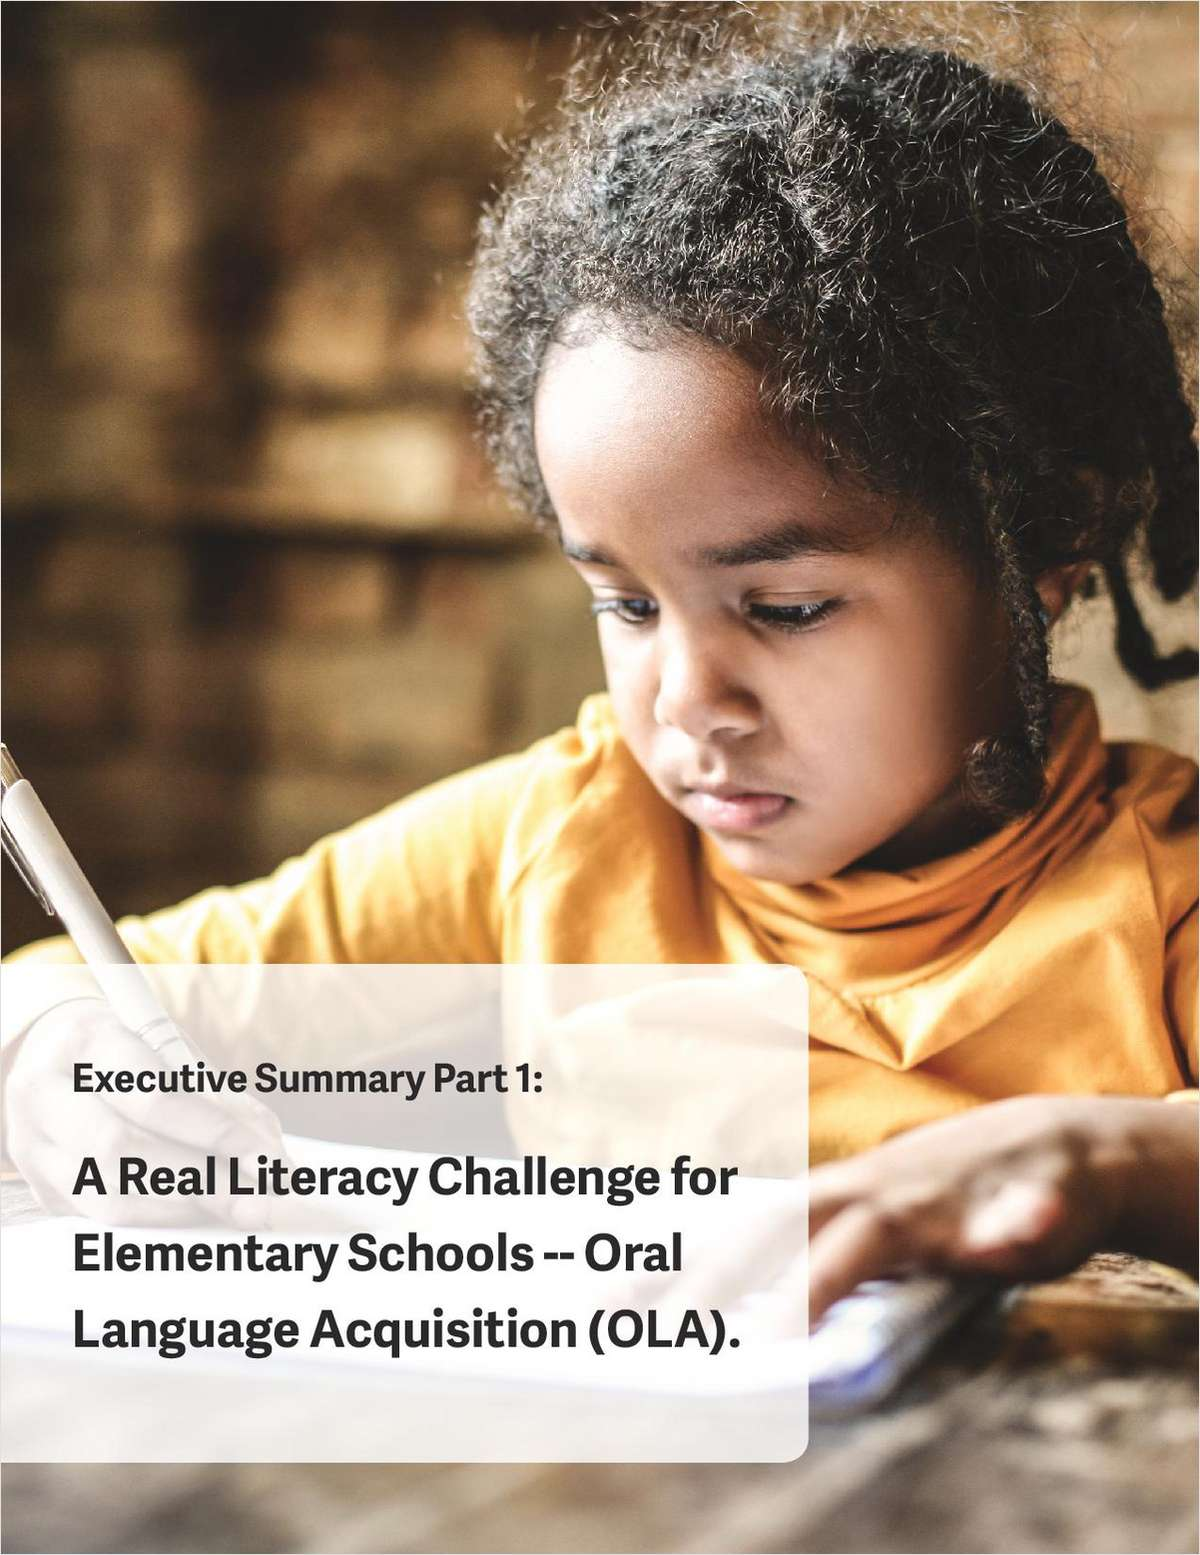 A Real Literacy Challenge for Elementary Schools -- Oral Language Acquisition (OLA)